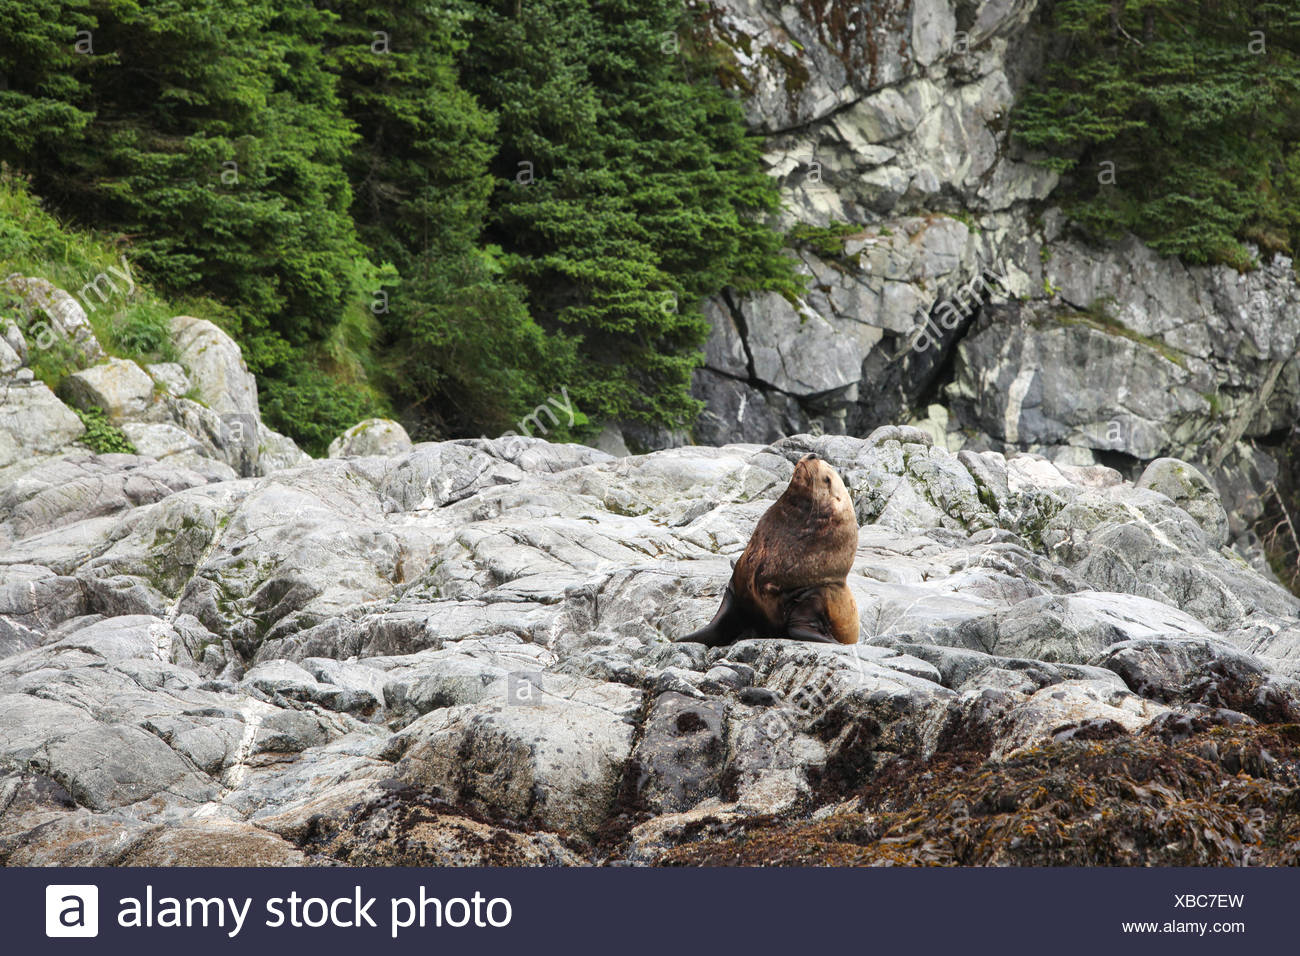 A sea lion sits and stretches on a rocky shoreline. - Stock Image